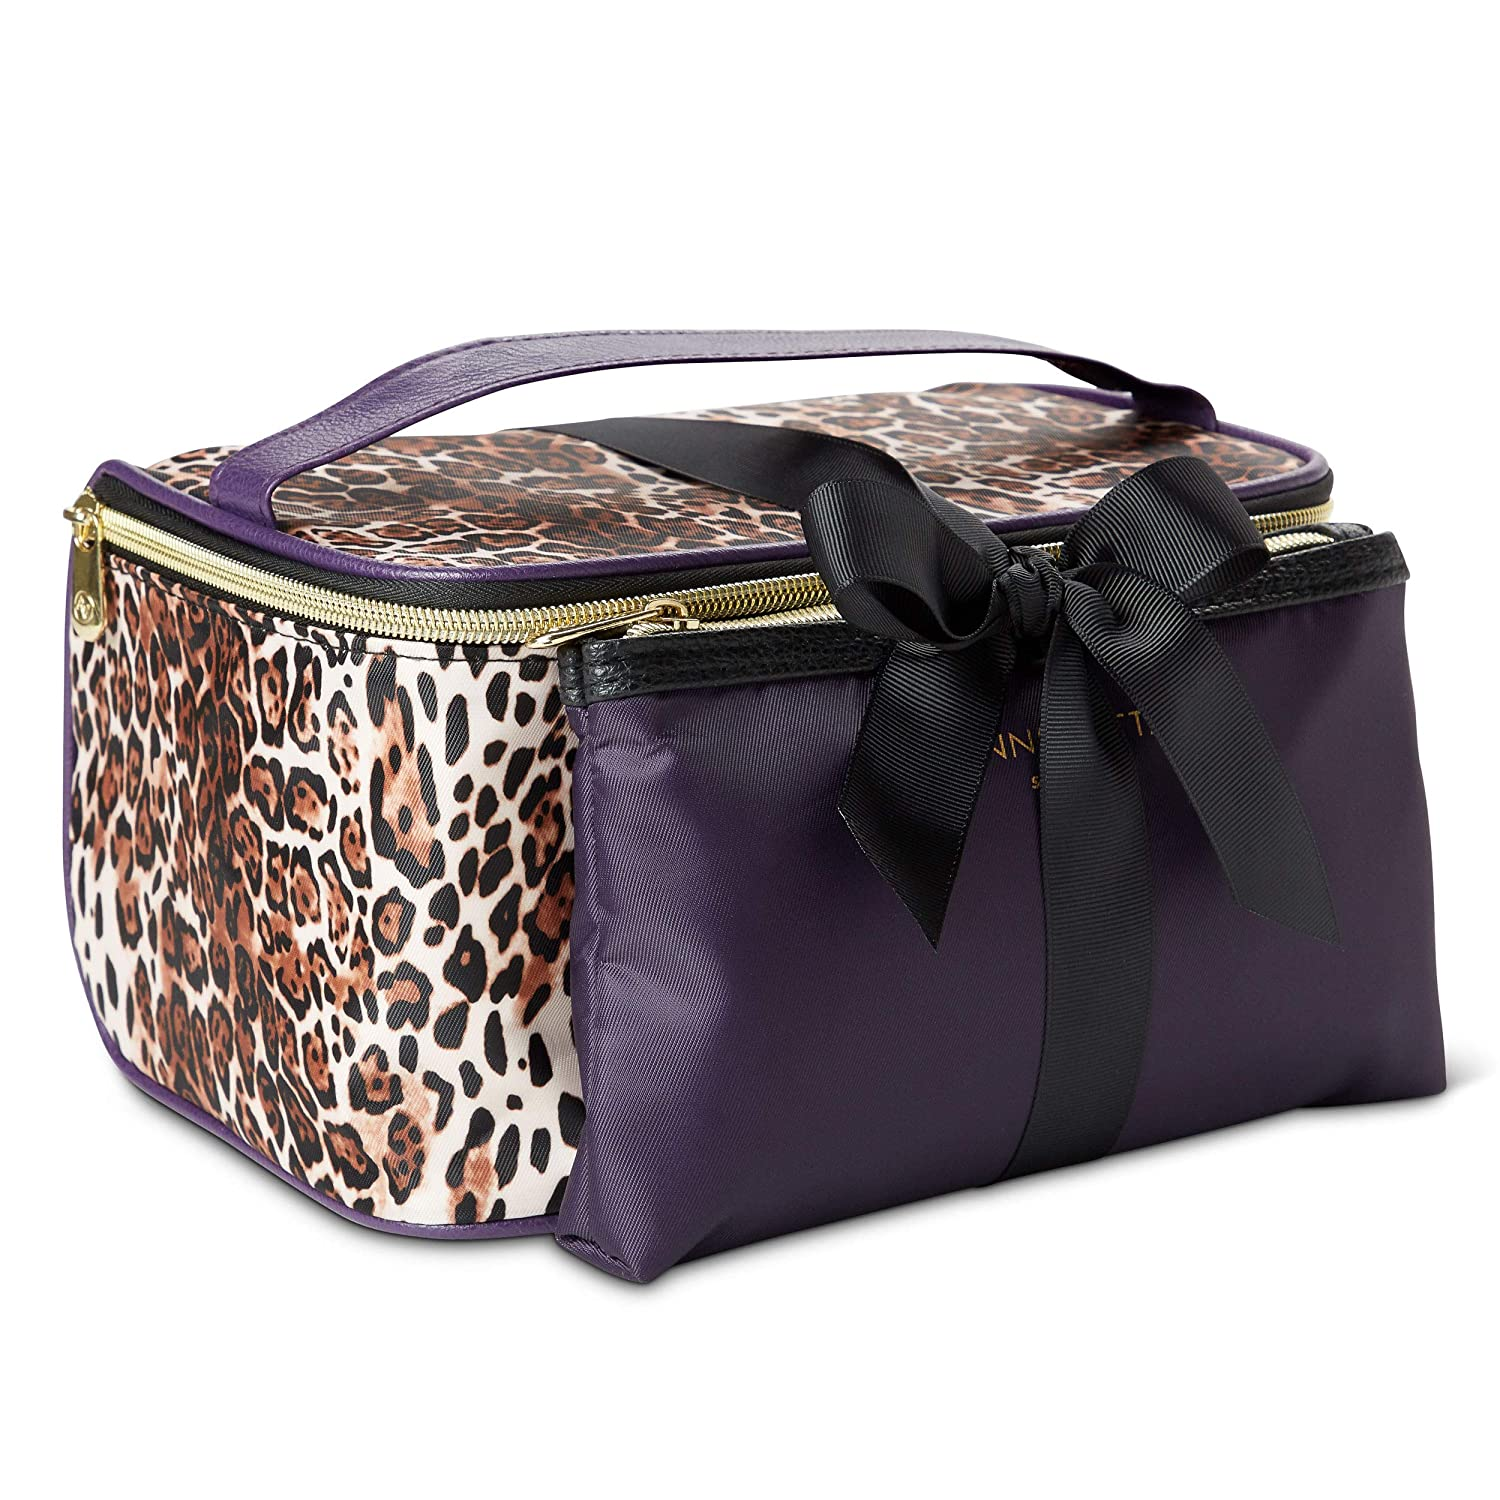 Adrienne Vittadini Makeup Bag Set: Nylon Carry On Toiletry & Cosmetic Train Case with Zipper for Women - Tote Bags with Plenty of Storage for Overnight Travel or Weekender Trips - Leopard